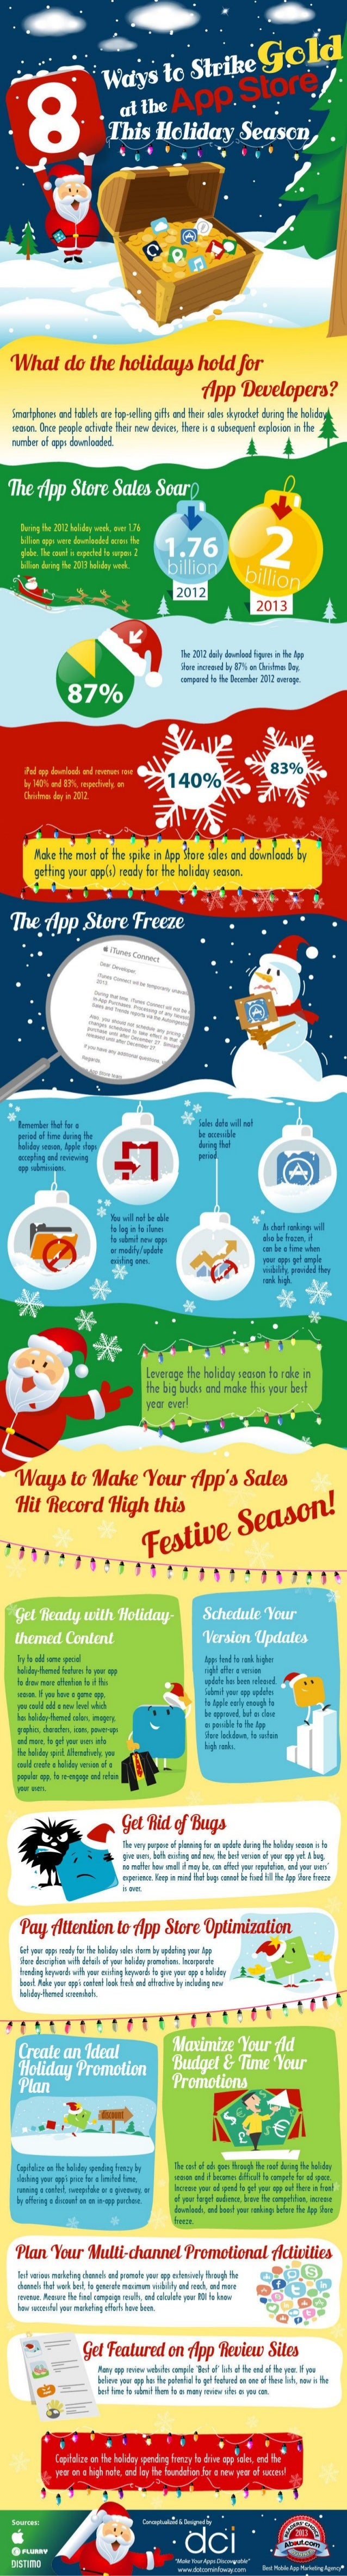 Infographic 8-ways-to-strike-gold-at-the-app-store-this-holiday-season